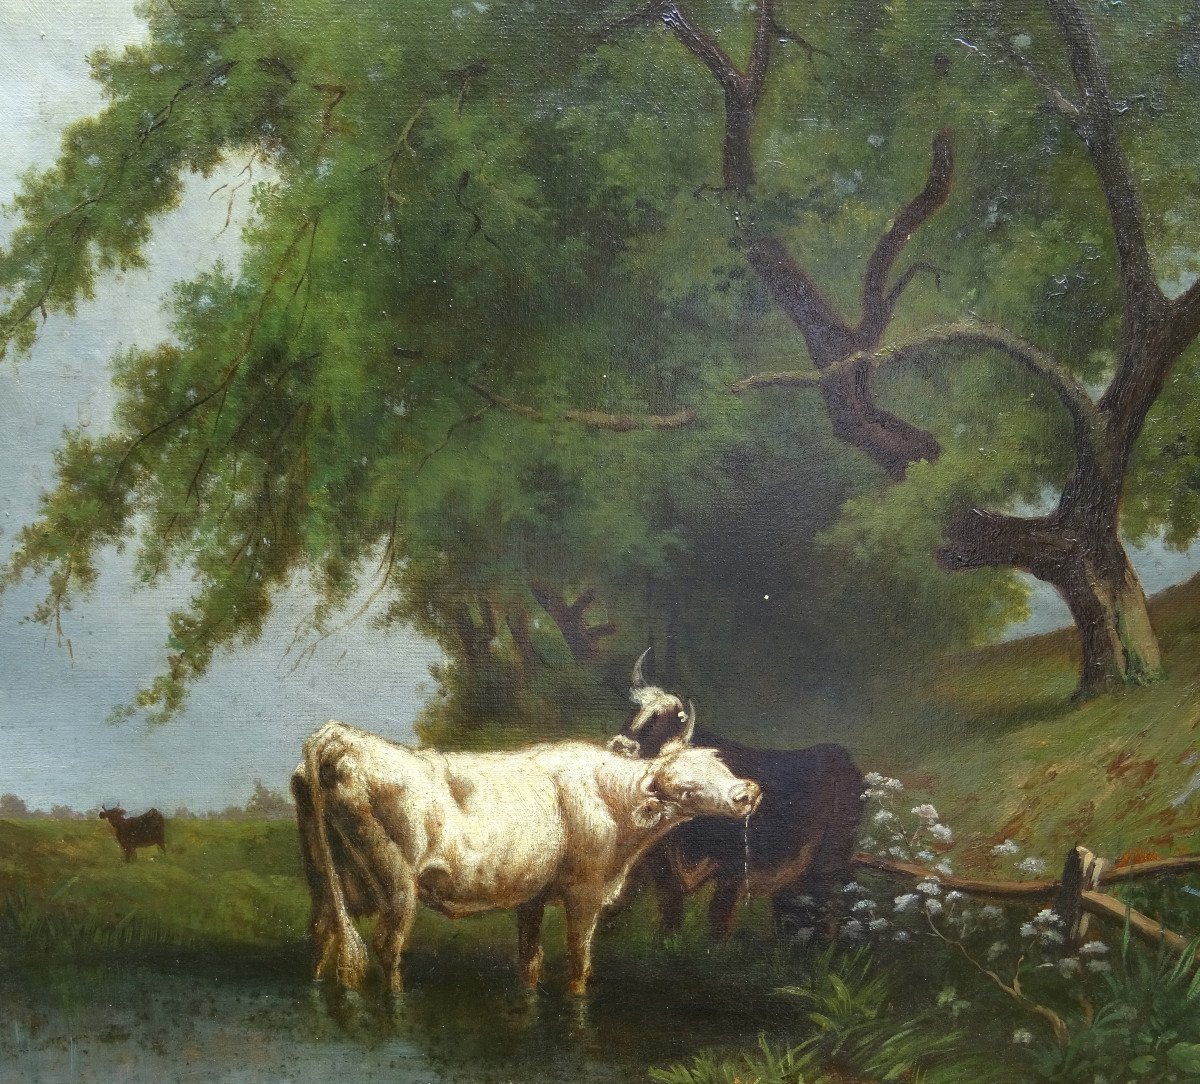 Table Of Cows Animated Landscape Oil On Canvas From The End Of The XIXth Century-photo-1